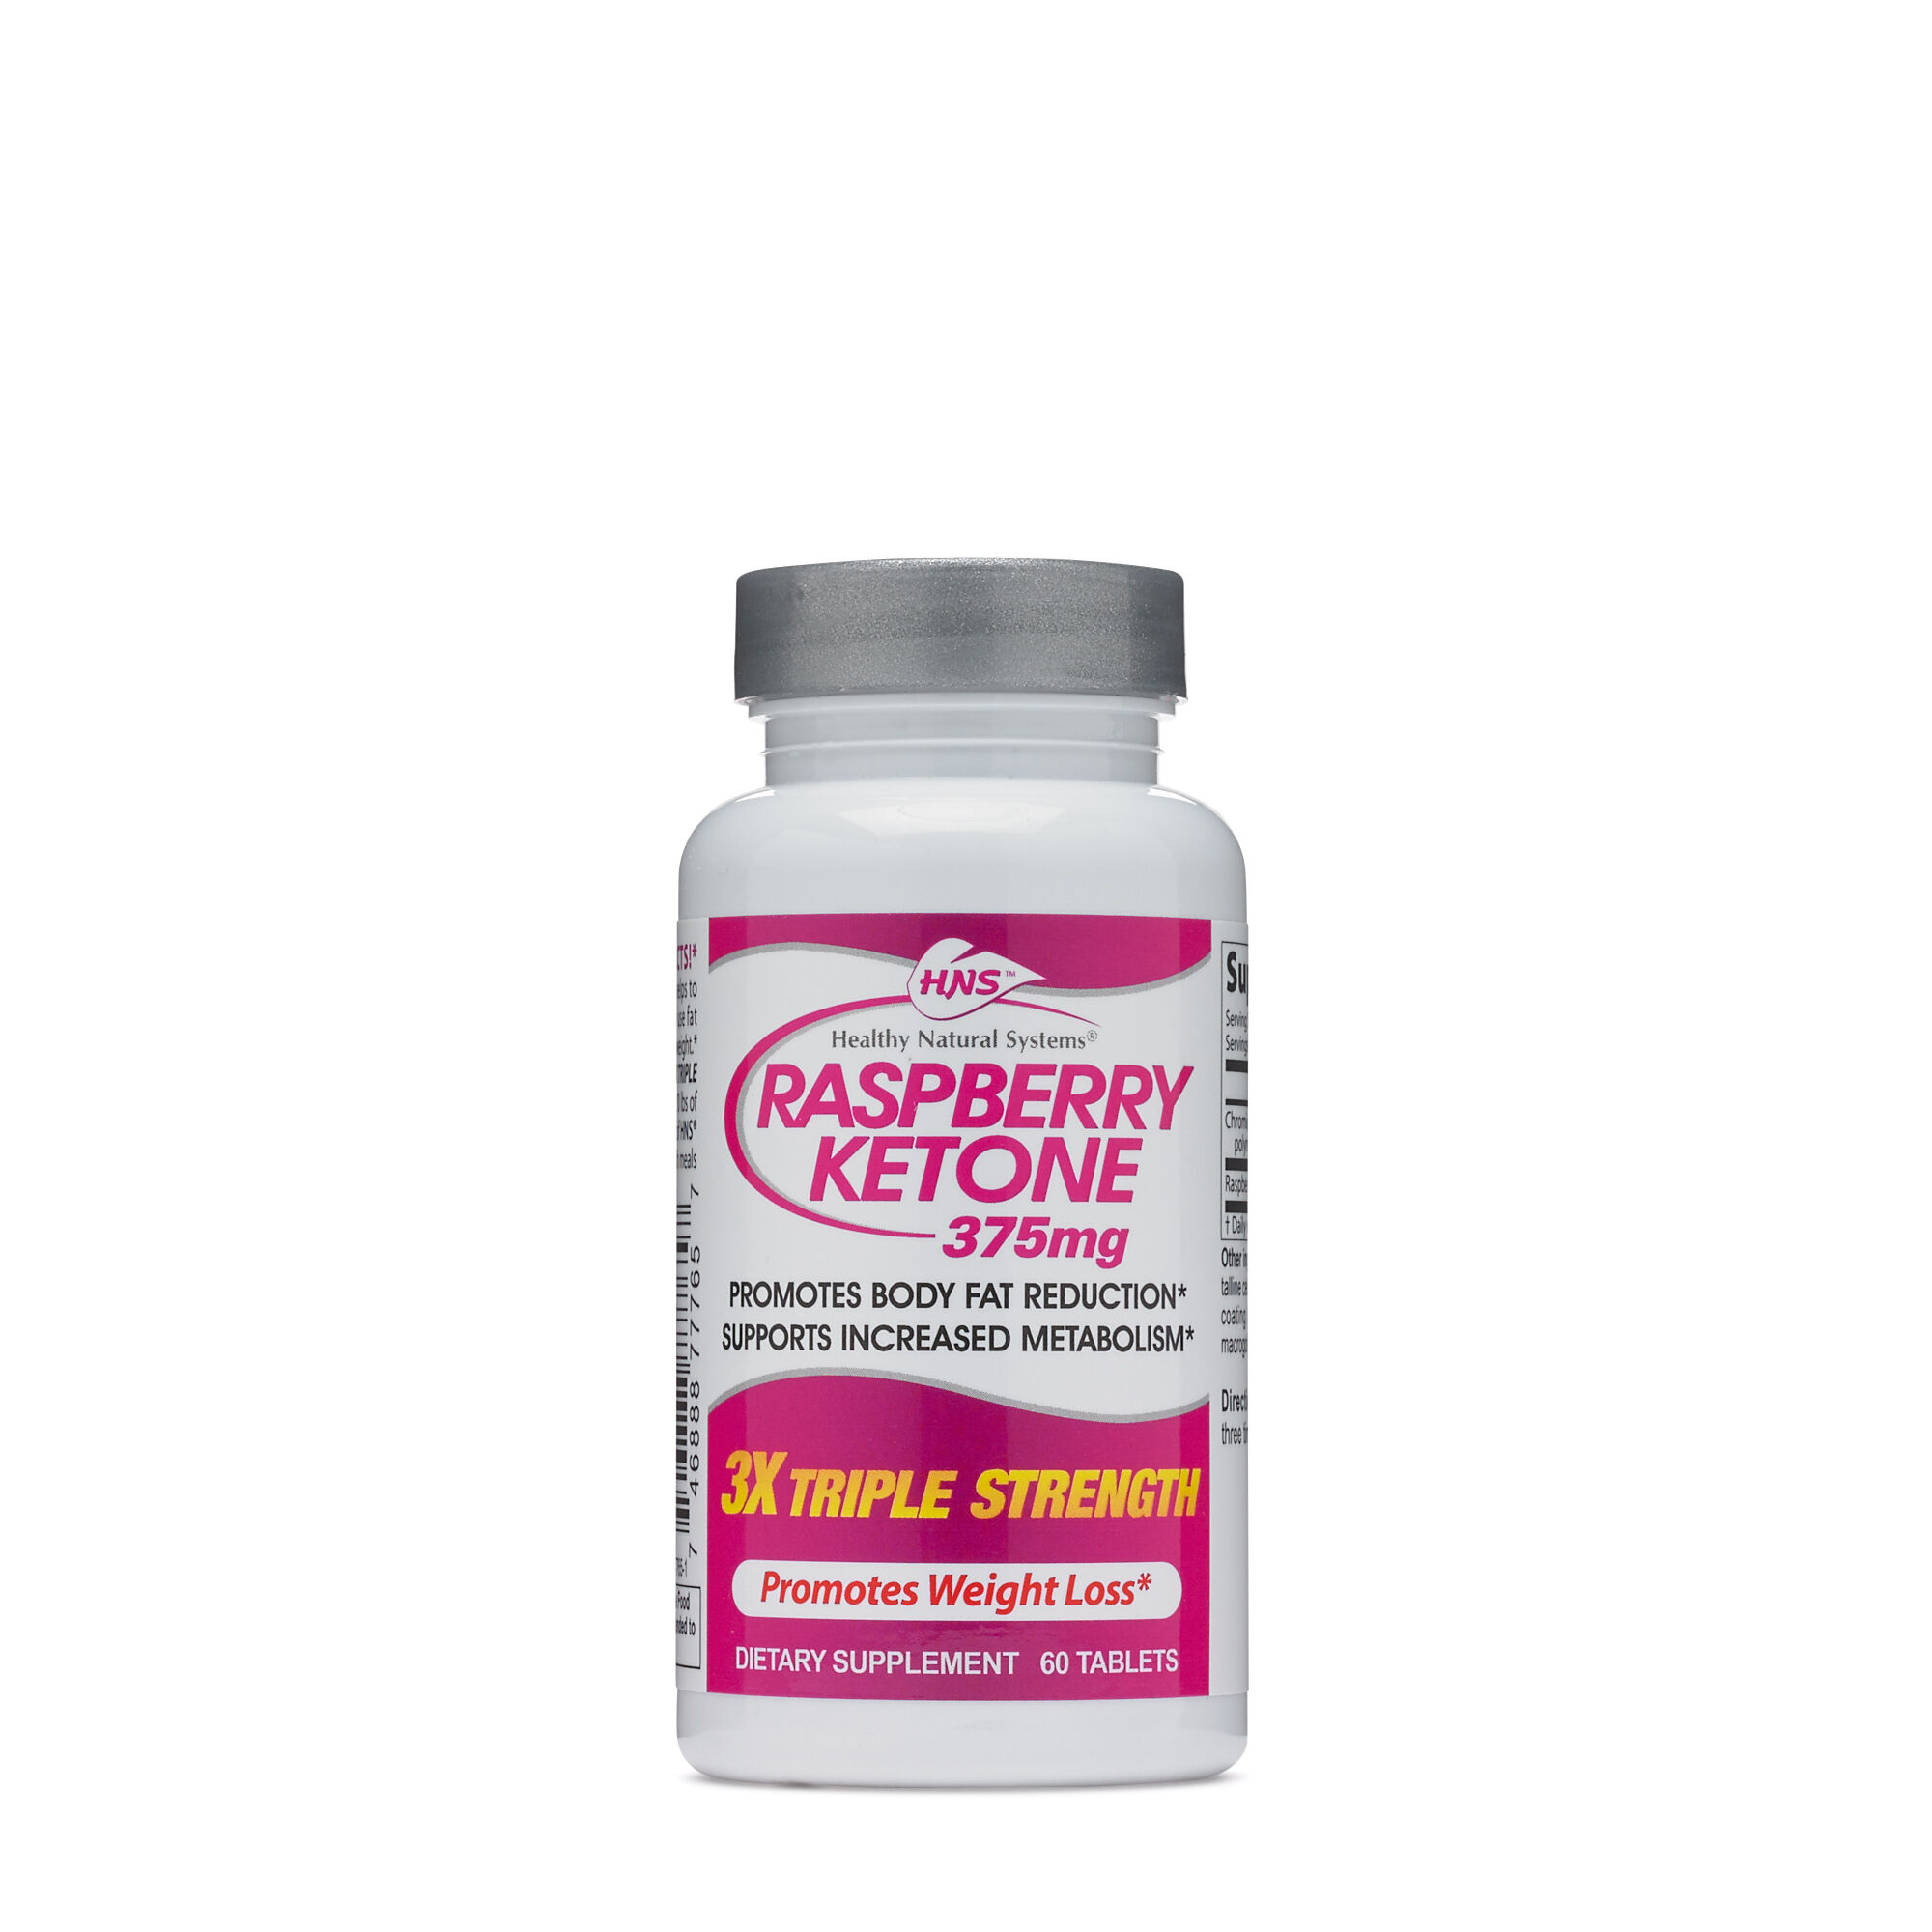 Healthy Natural Systems Raspberry Ketone 3x Triple Strength Gnc